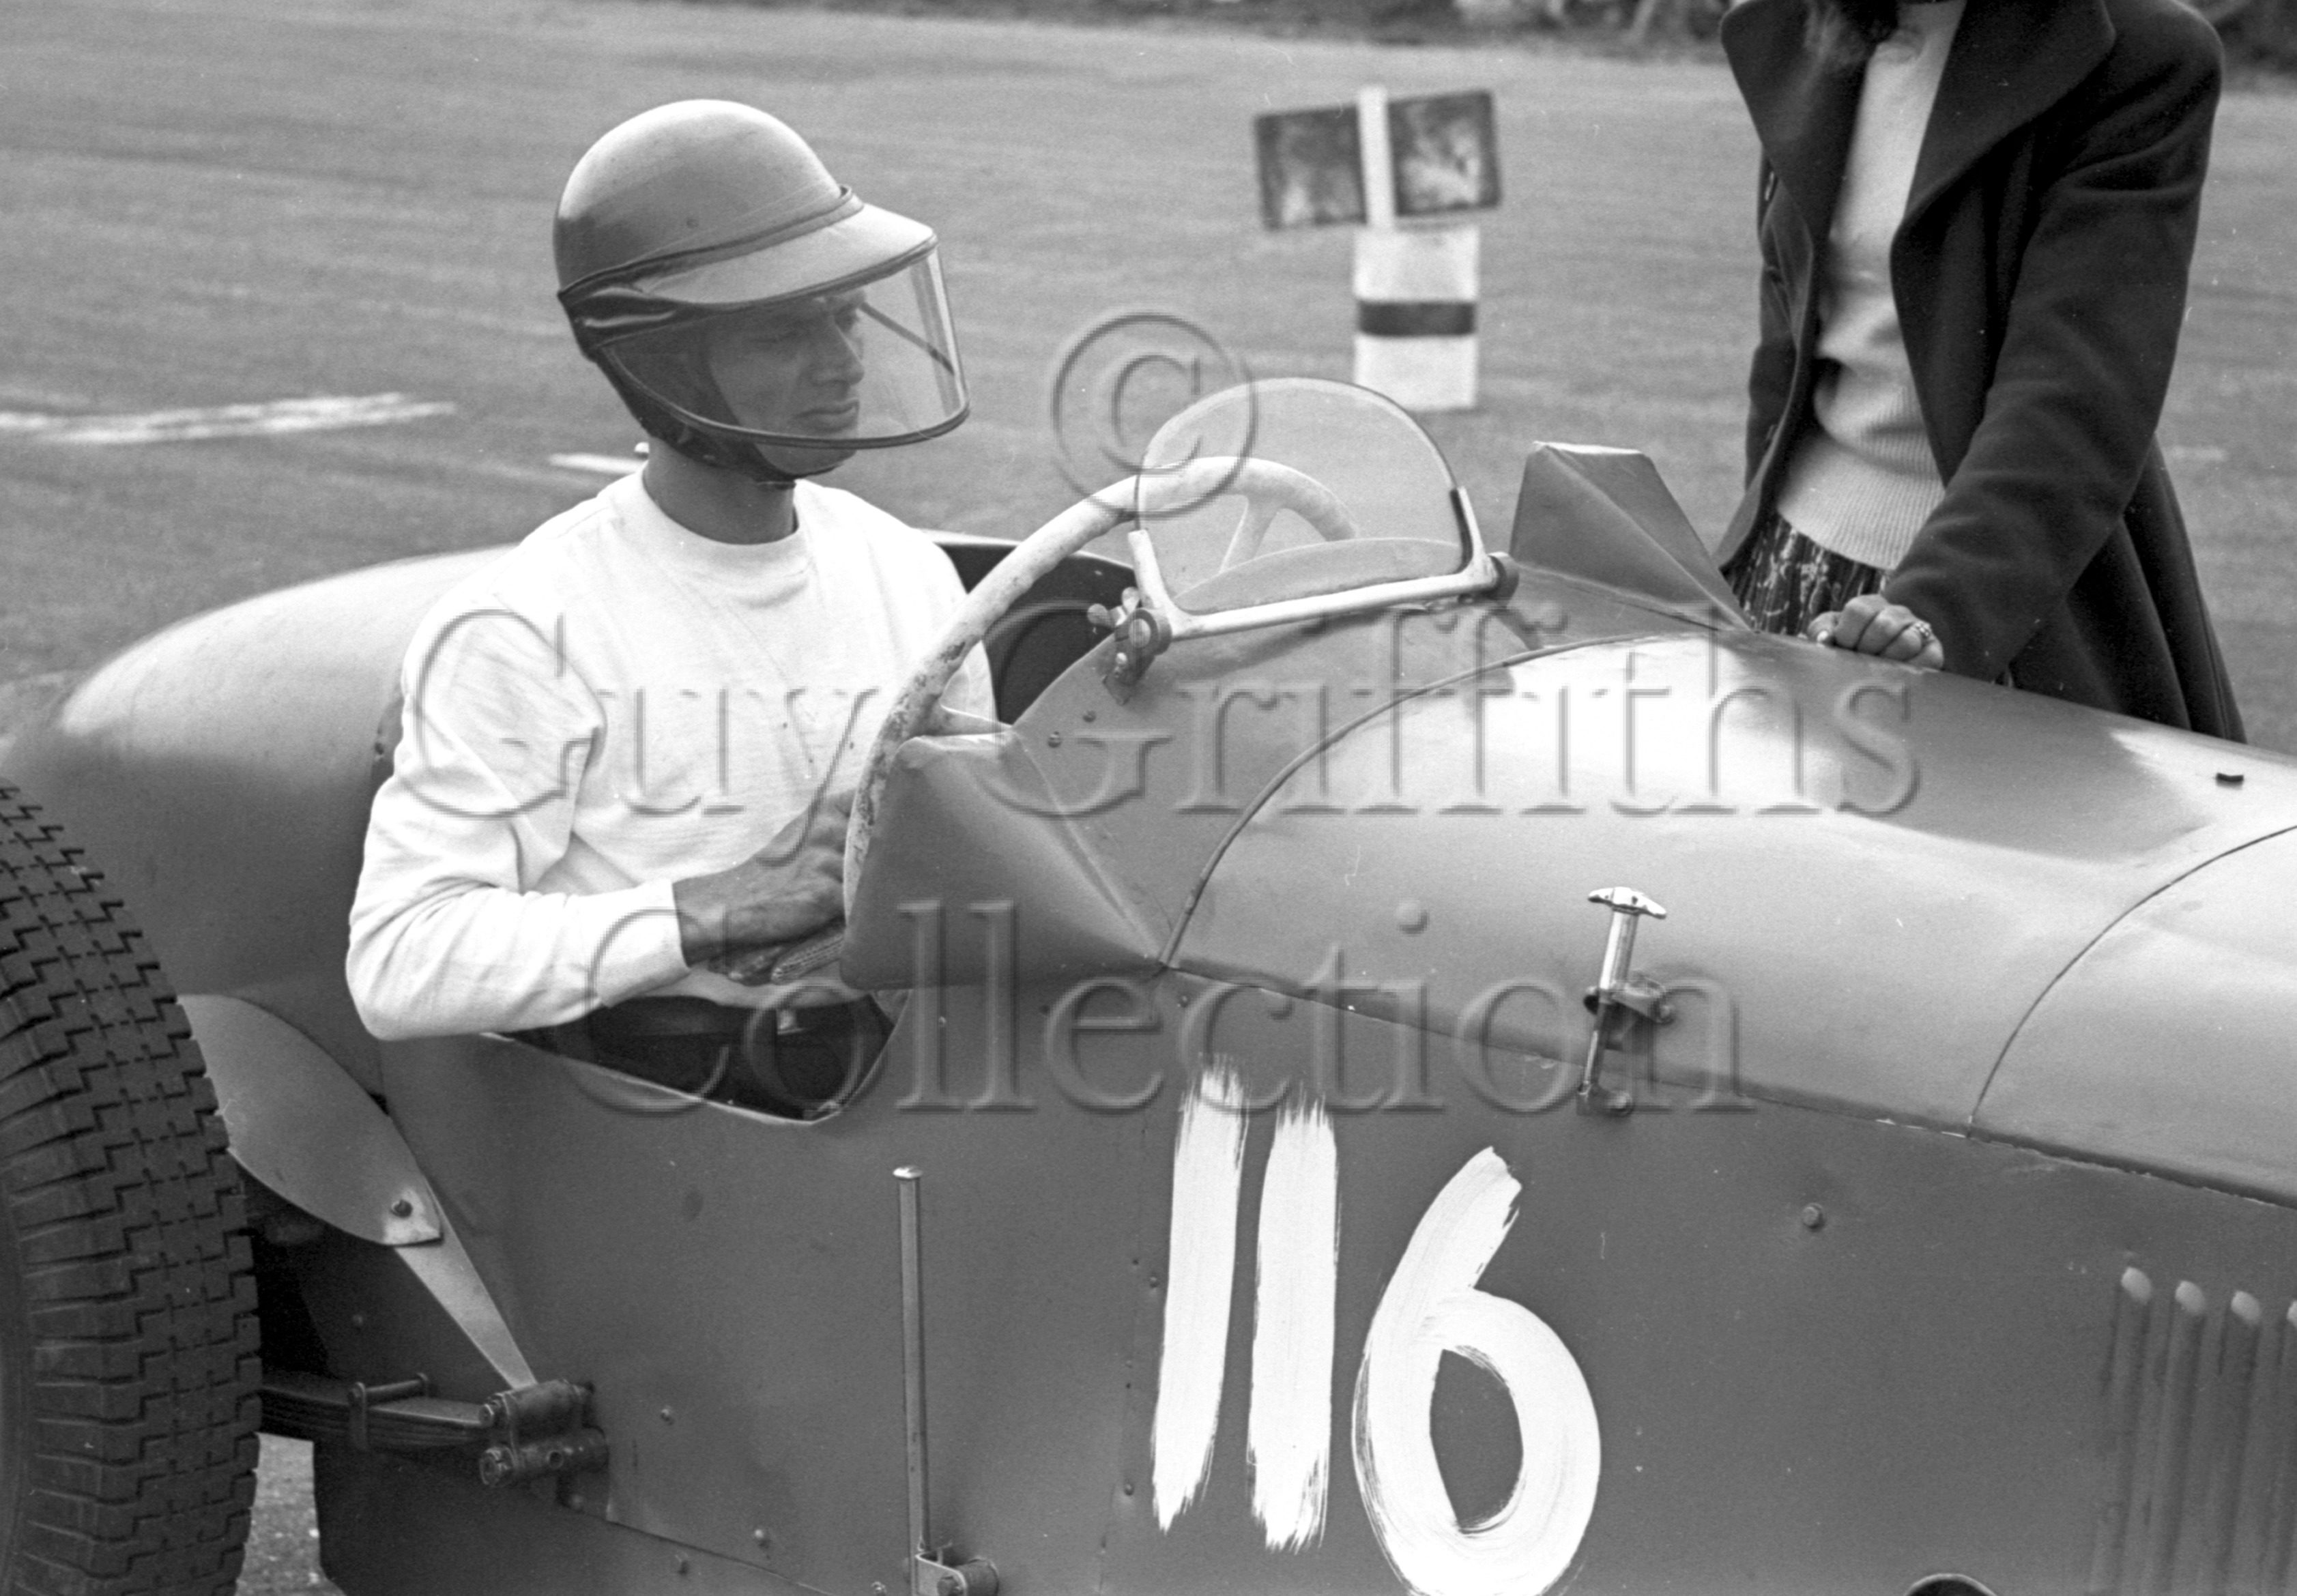 33-244–R-Dutt–Maserati–Silverstone–24-06-1950.jpg - The Guy Griffiths Collection